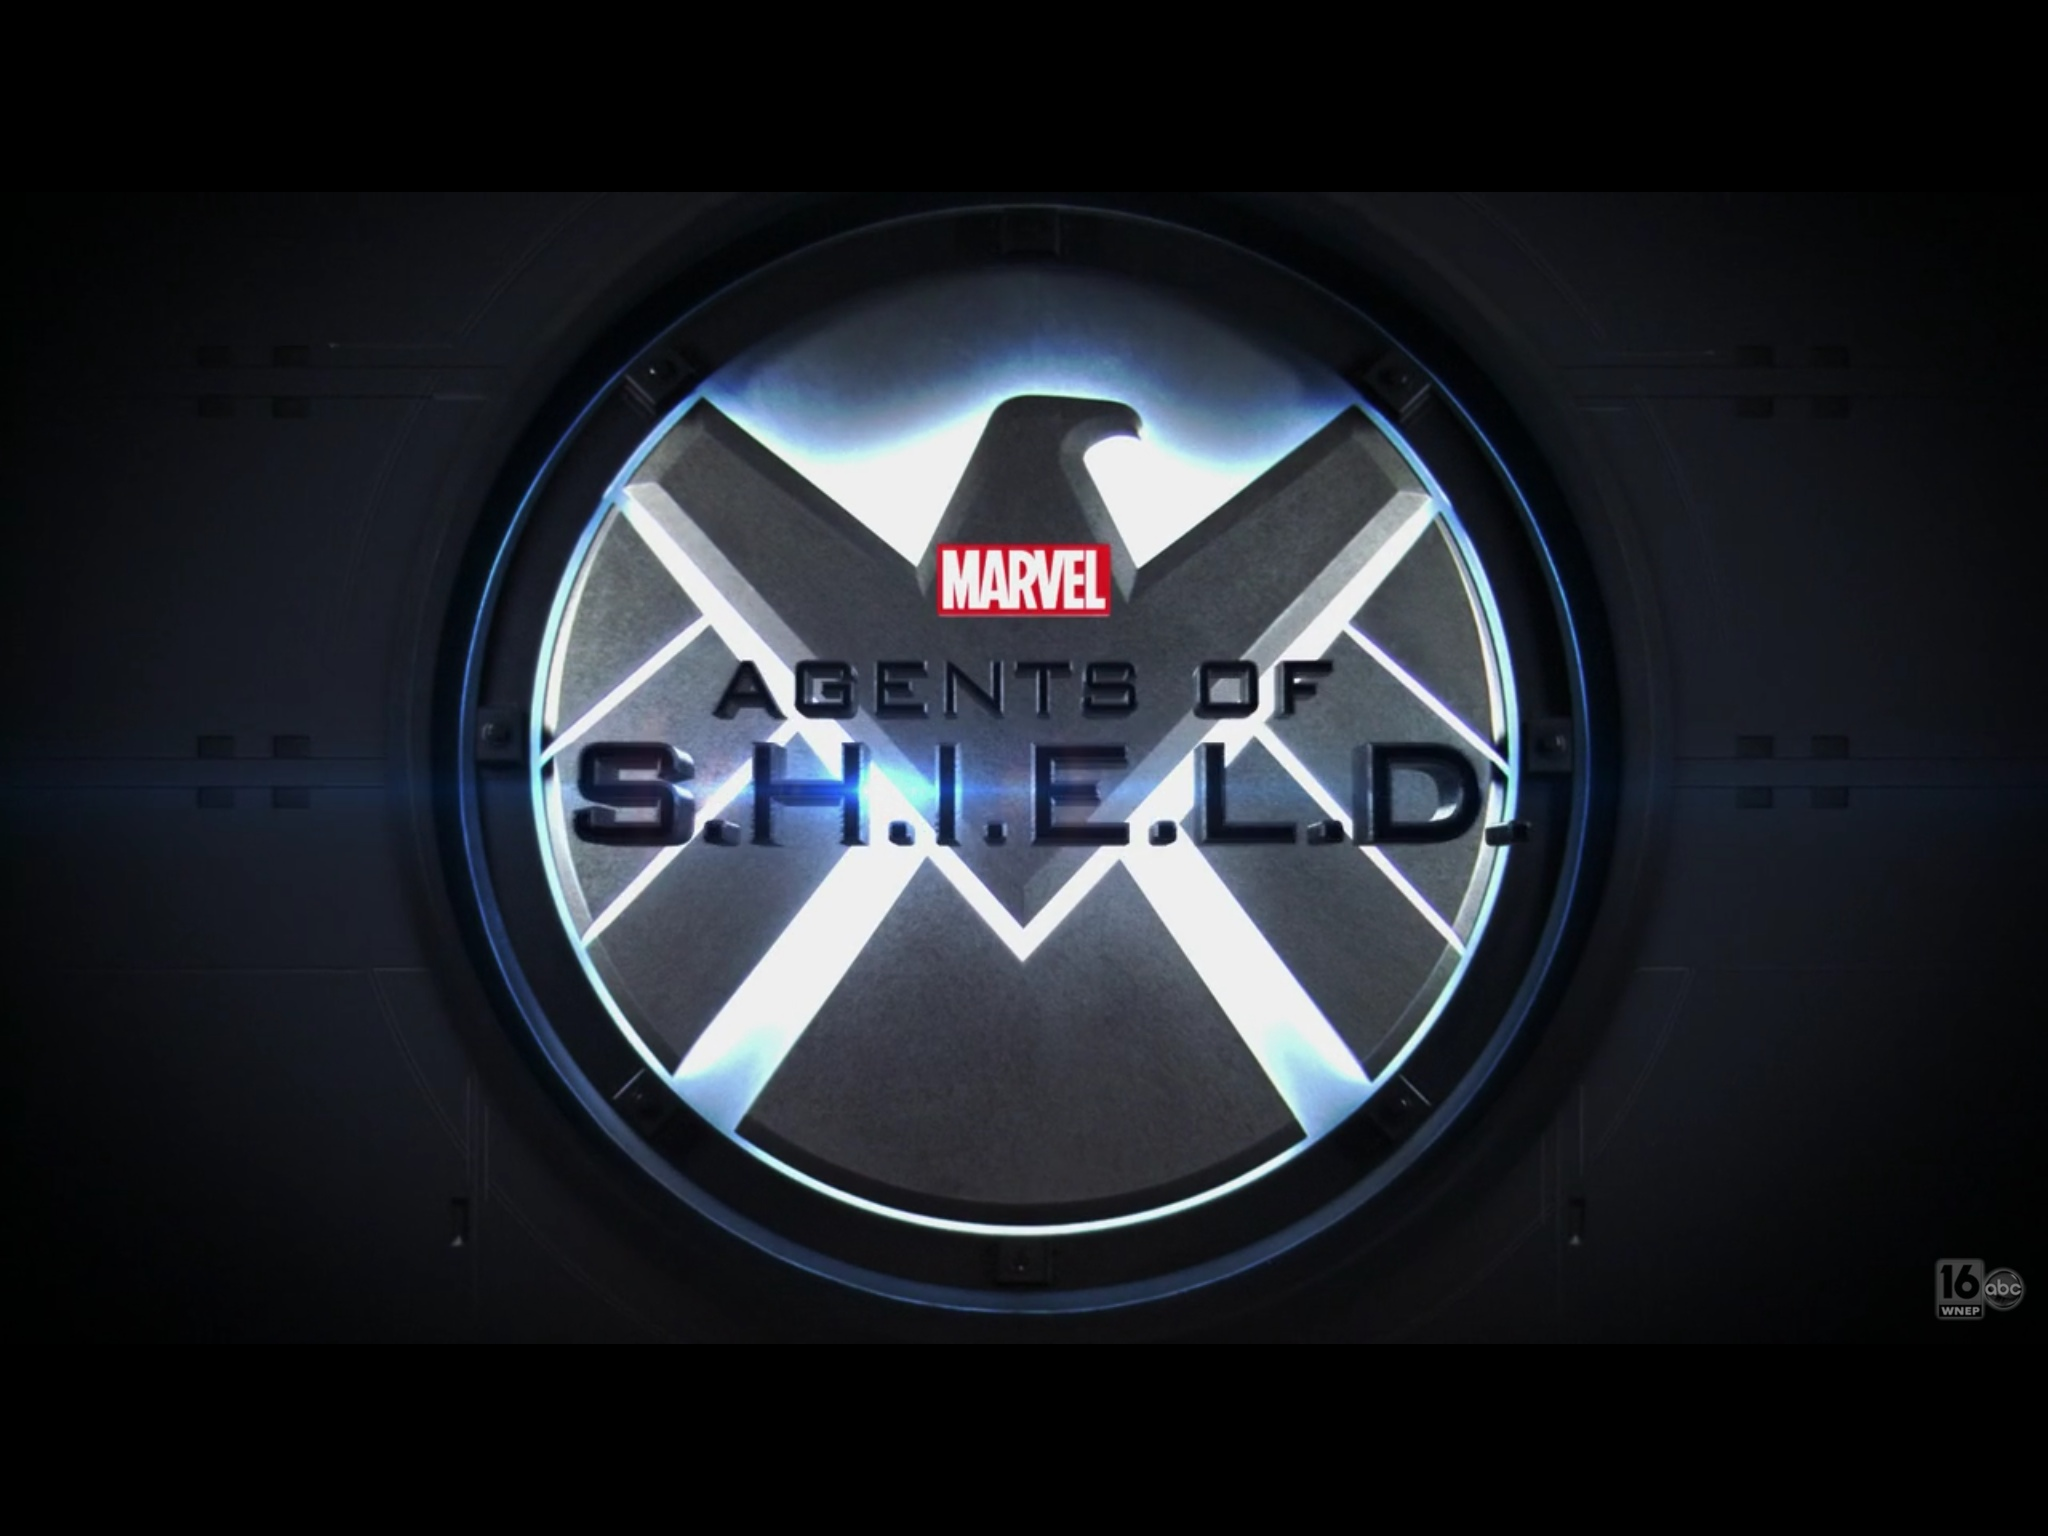 agents of shield: taking the marvel out of the avengers — obsessive